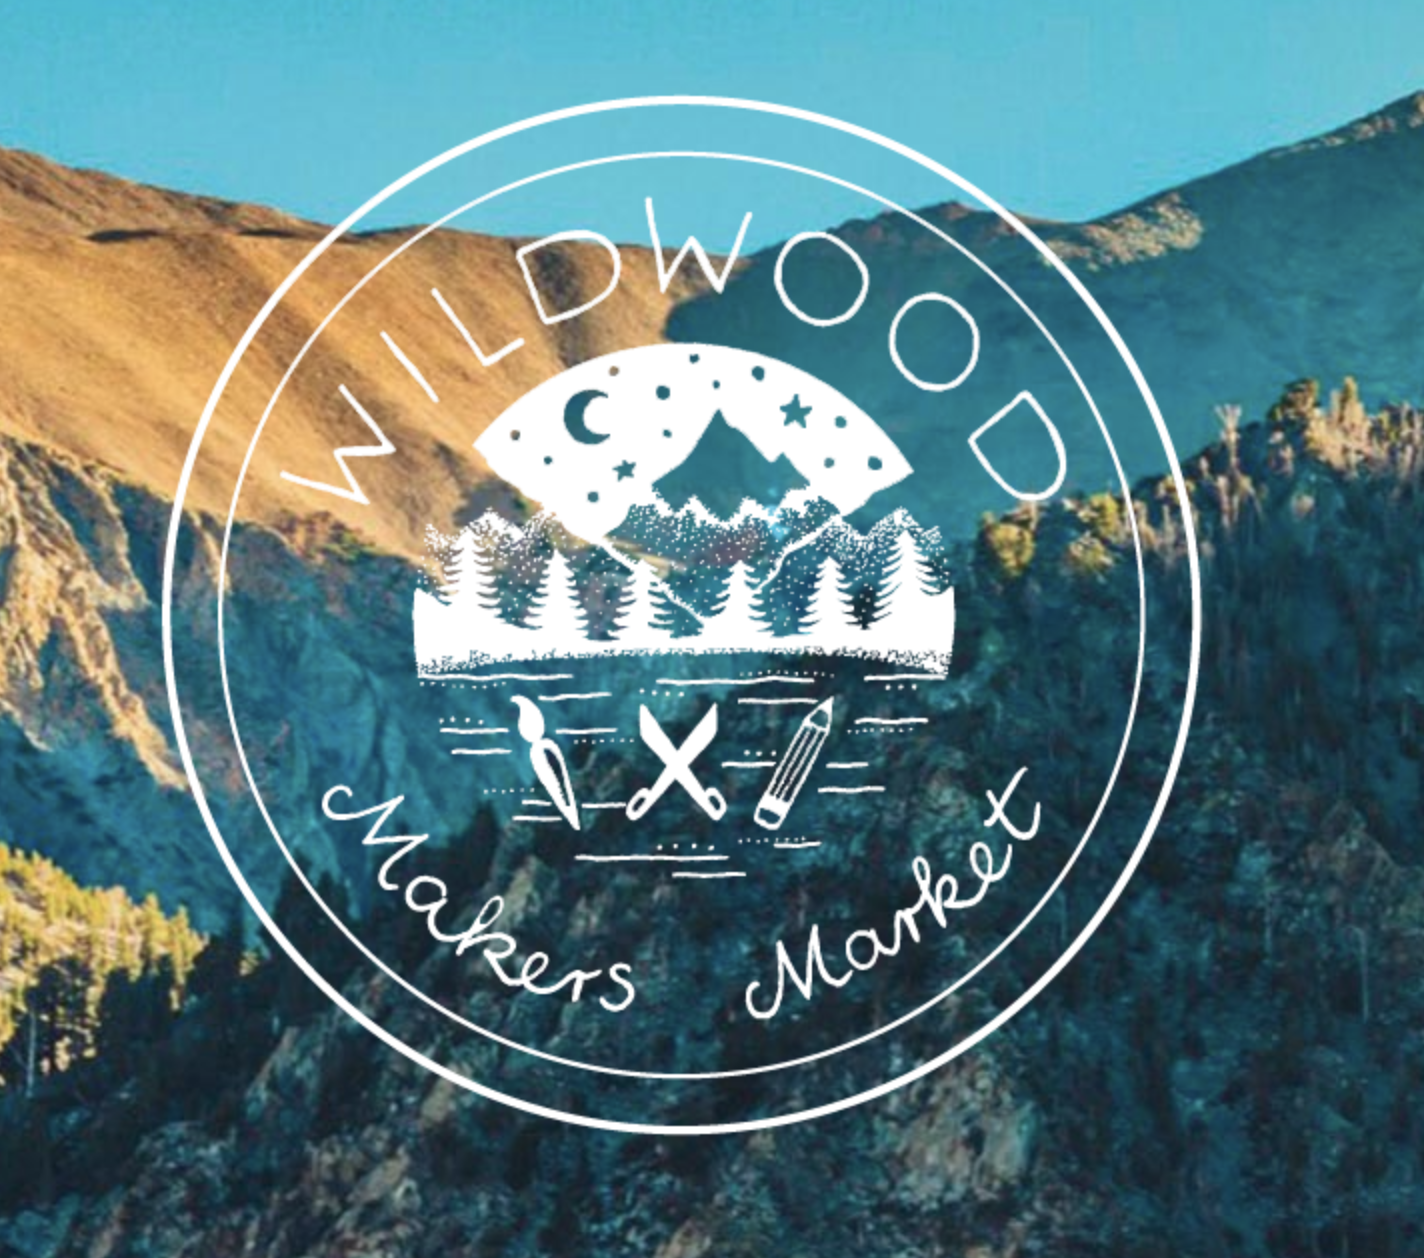 WILDWOOD MAKERS MARKET 989 TALLAC AVE. SOUTH LAKE TAHOE